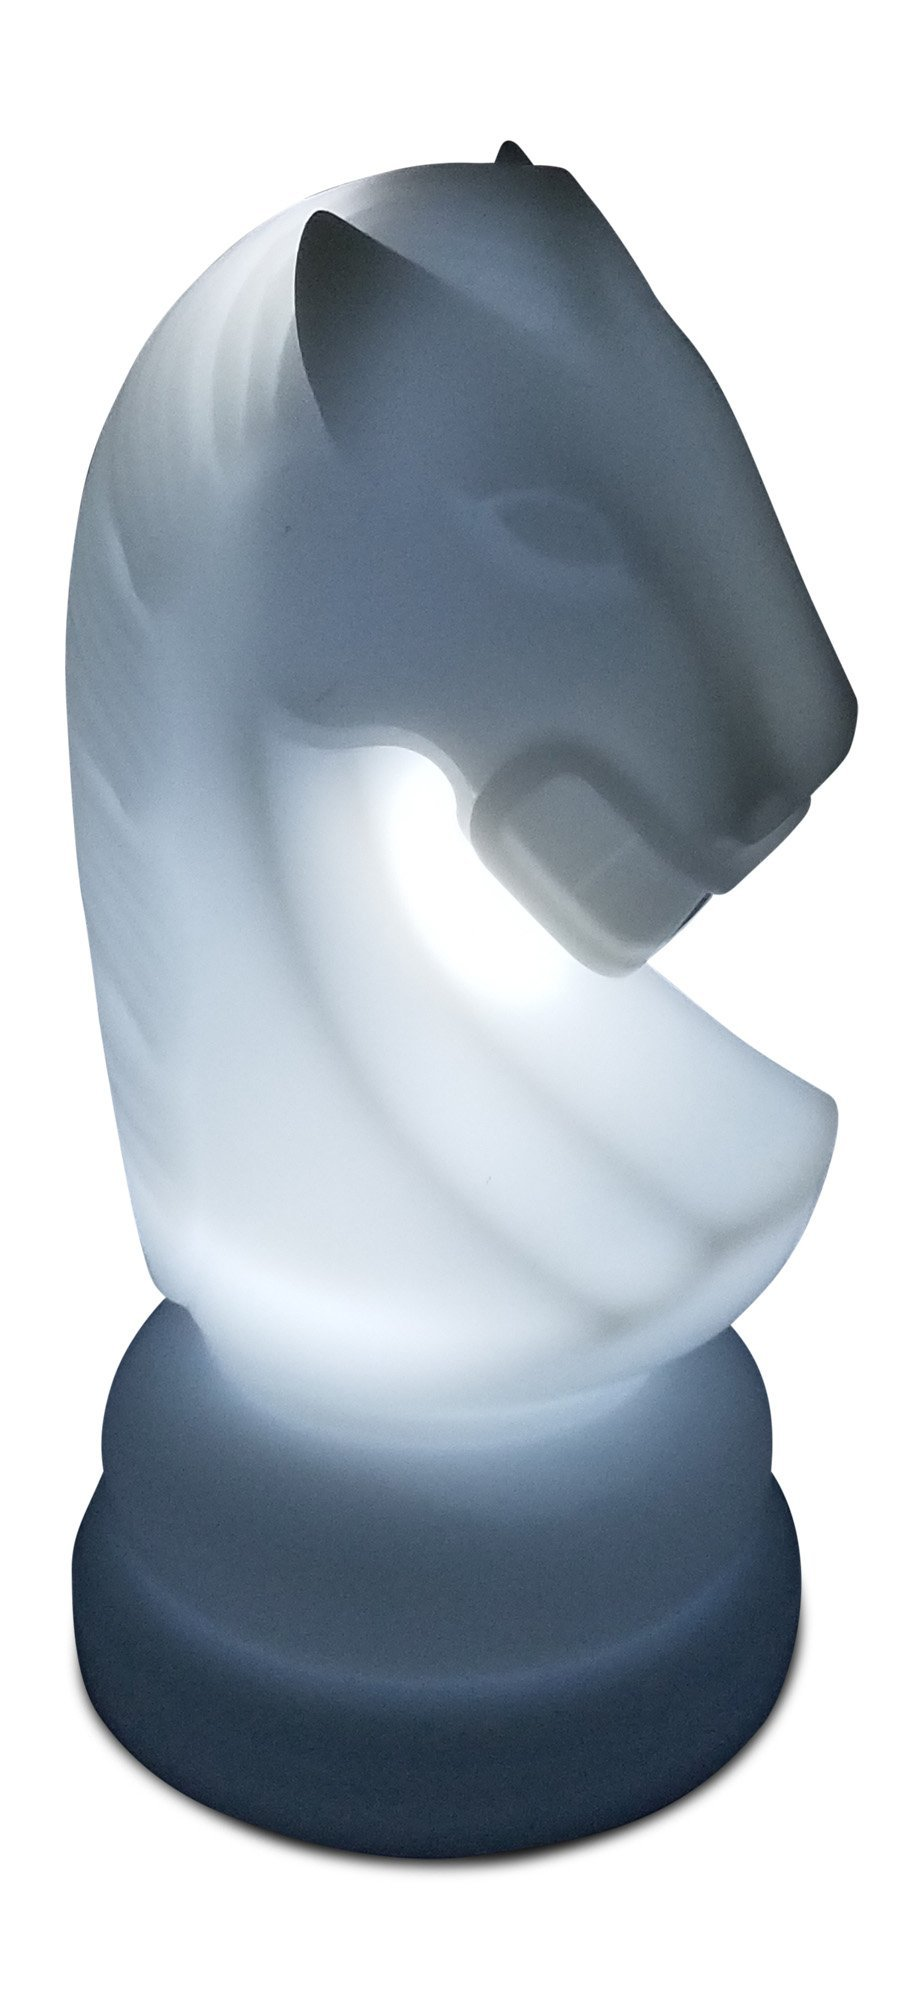 MegaChess 23 Inch Premium Plastic Knight Light-Up Giant Chess Piece - White | Default Title | MegaChess.com